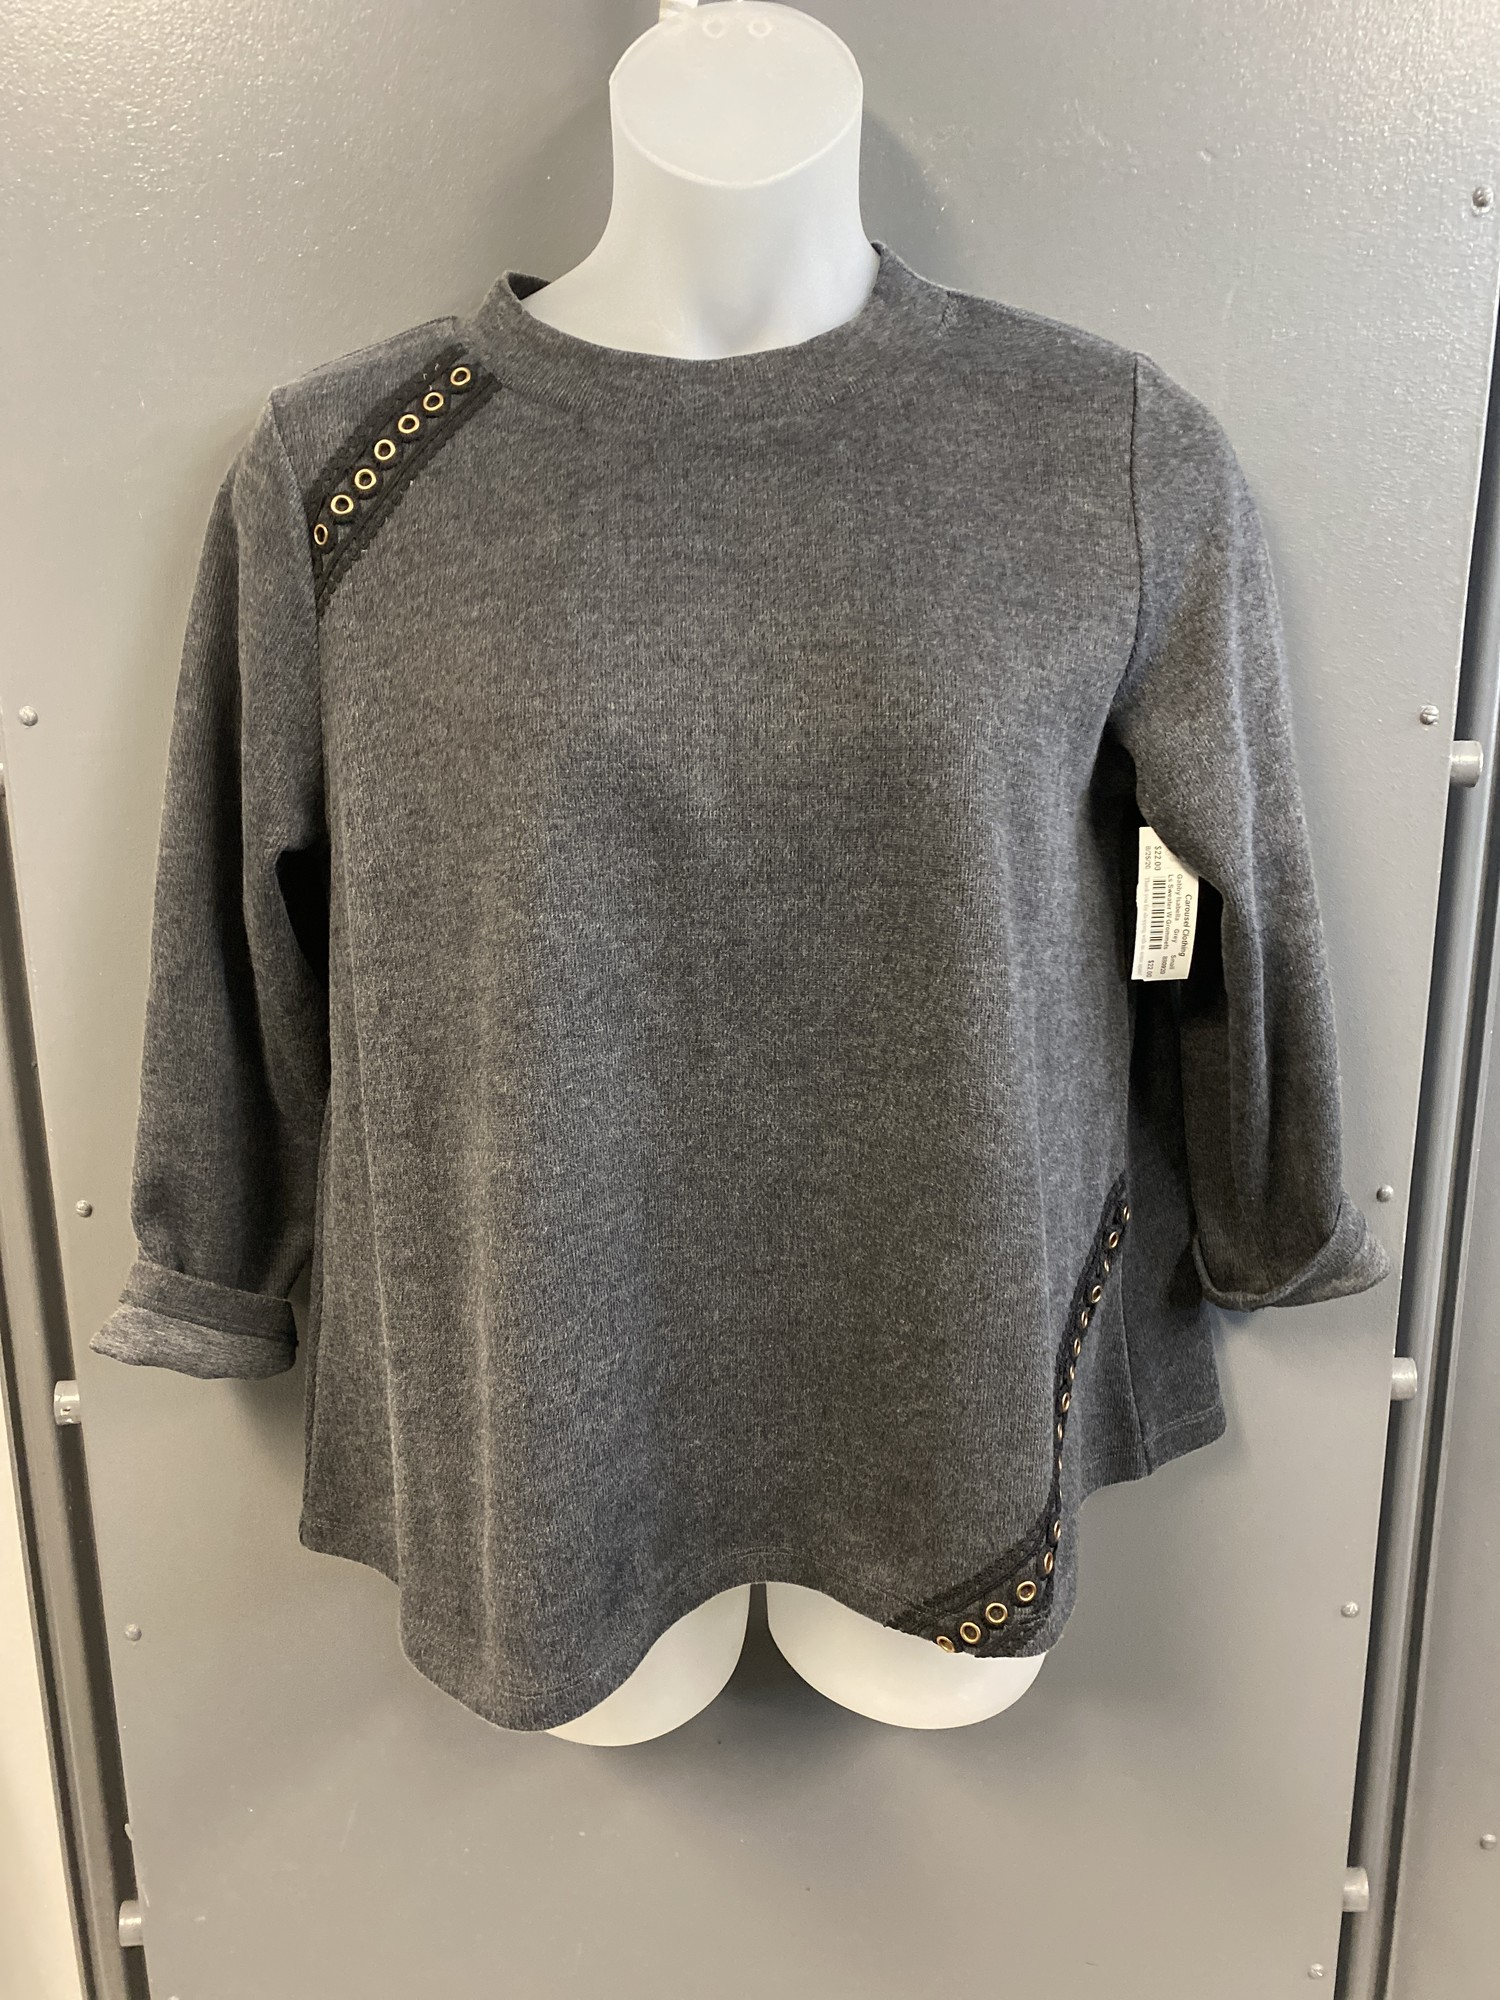 Ls Sweater W Grommets, Grey, Size: Small